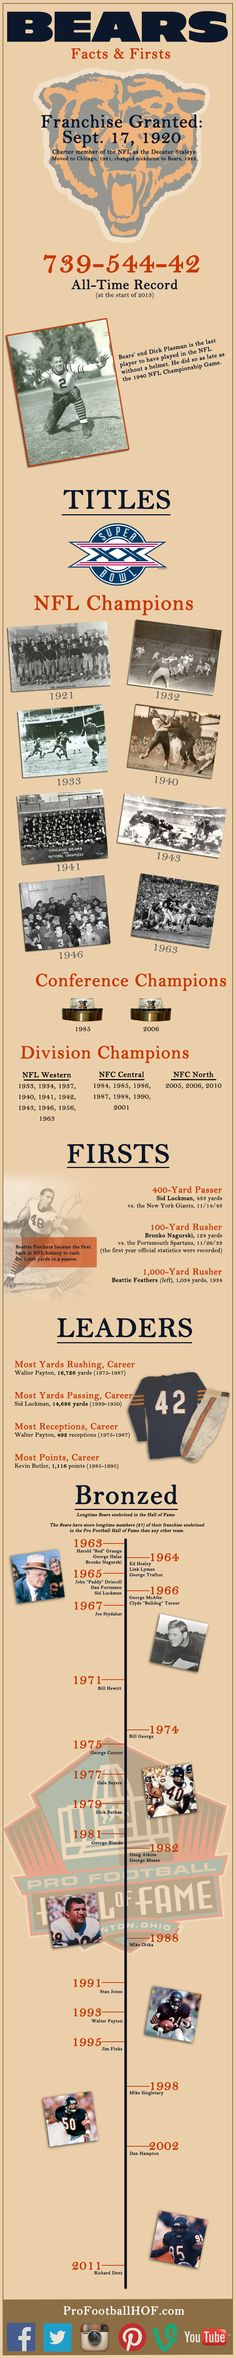 Facts and Firsts: Chicago Bears